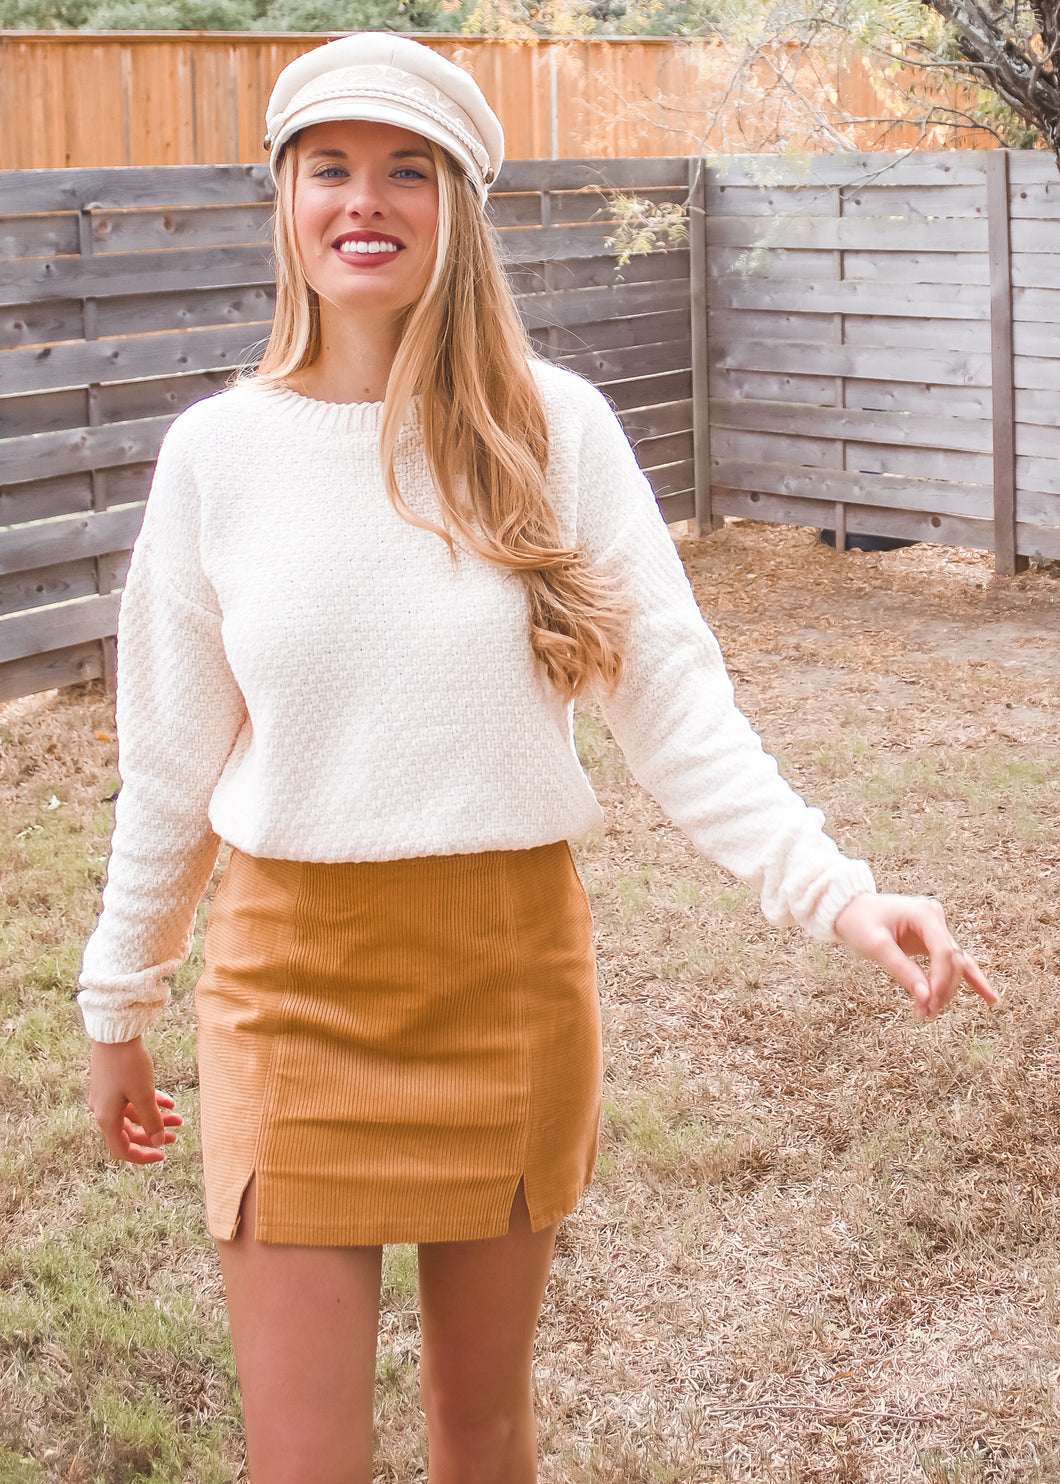 Be My Honey Corduroy Skirt - Sugar & Spice Apparel Boutique